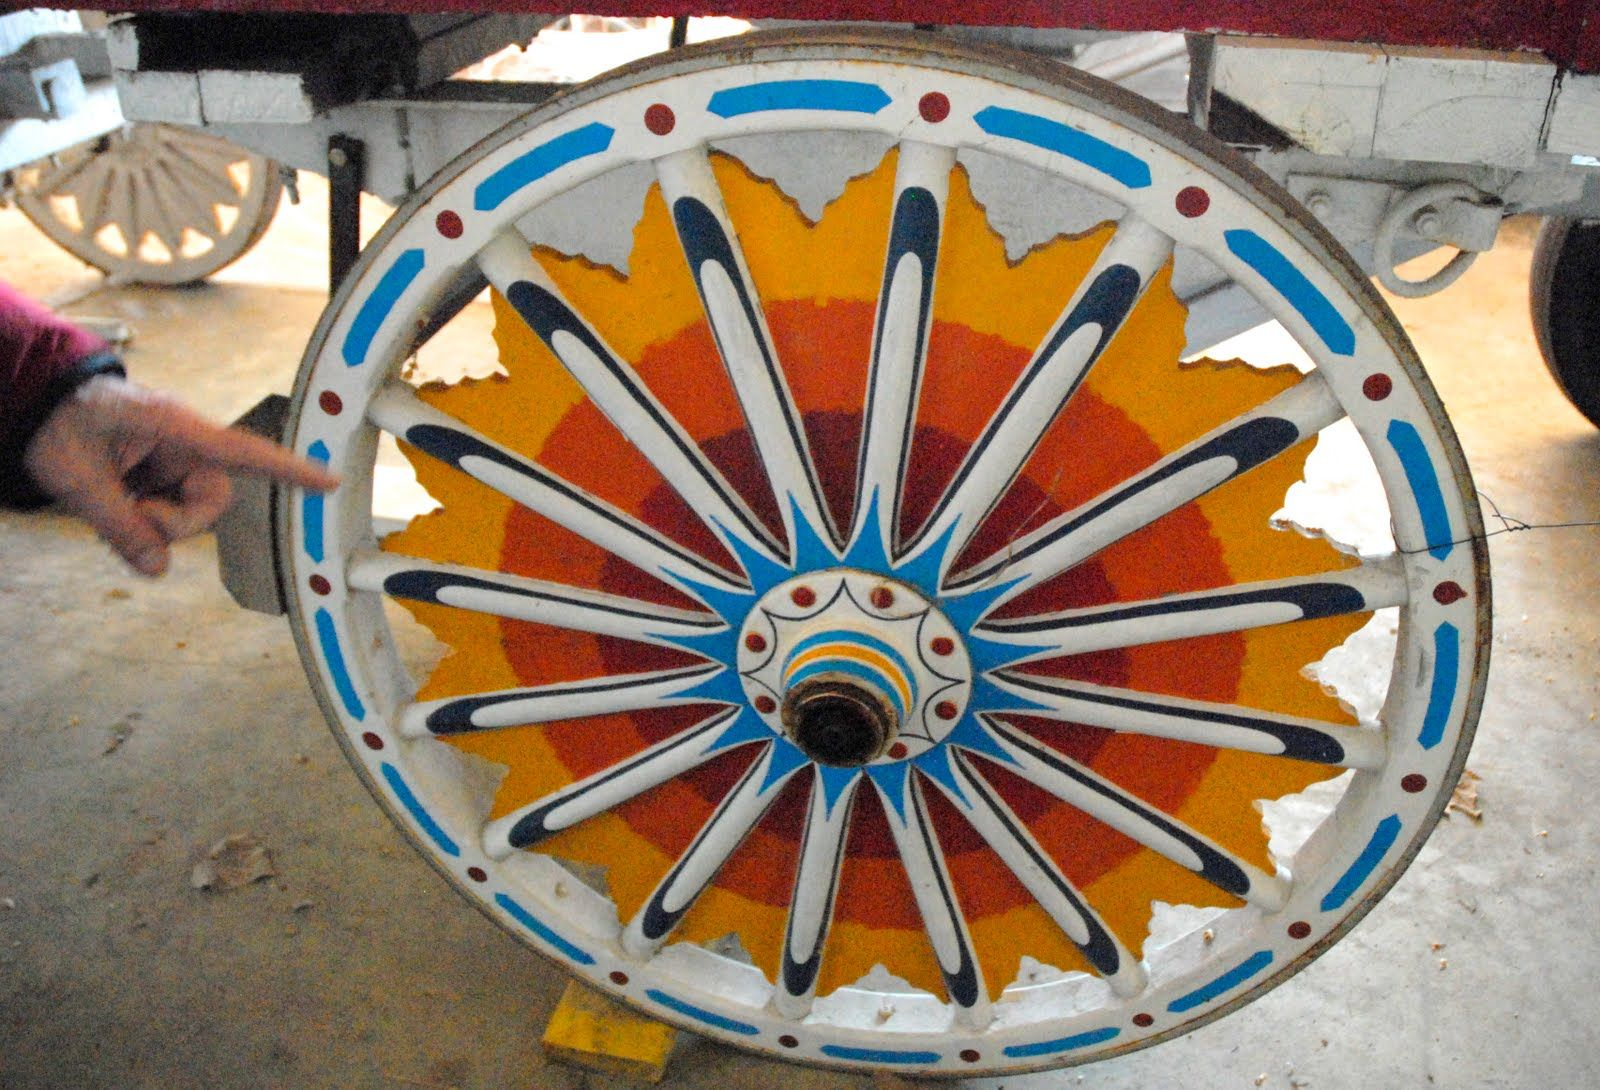 Circus Auto Parts 1000 Images About Circus Wagons Amp Odd Things On Pinterest Air